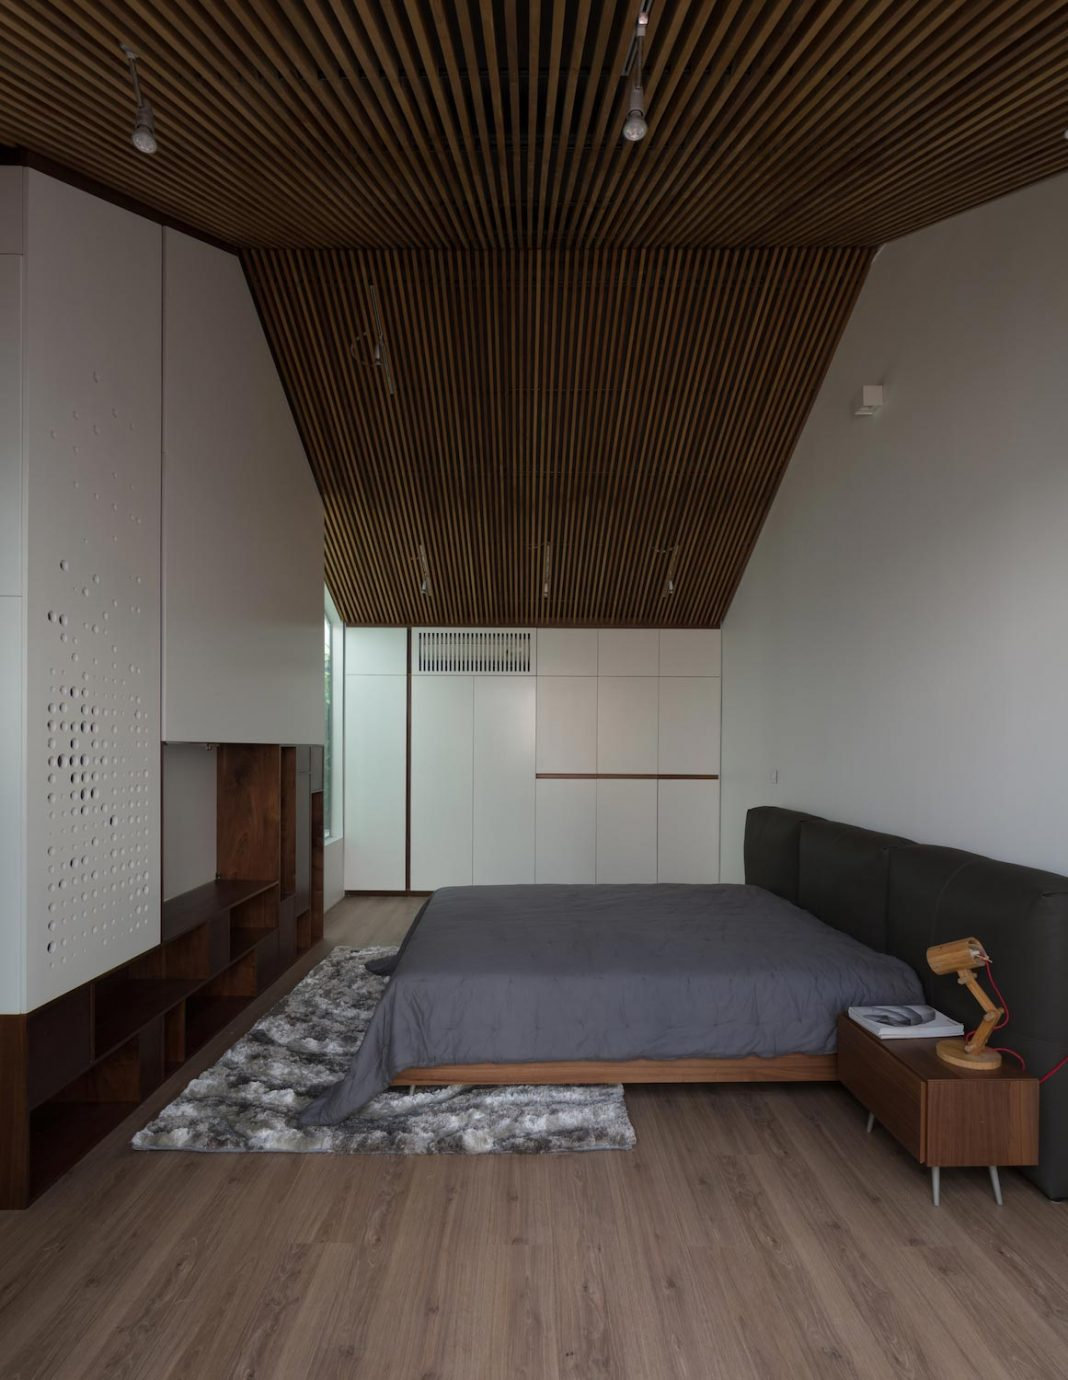 New comfortable attic apartment in the old house located in the Old Quarter of Hanoi